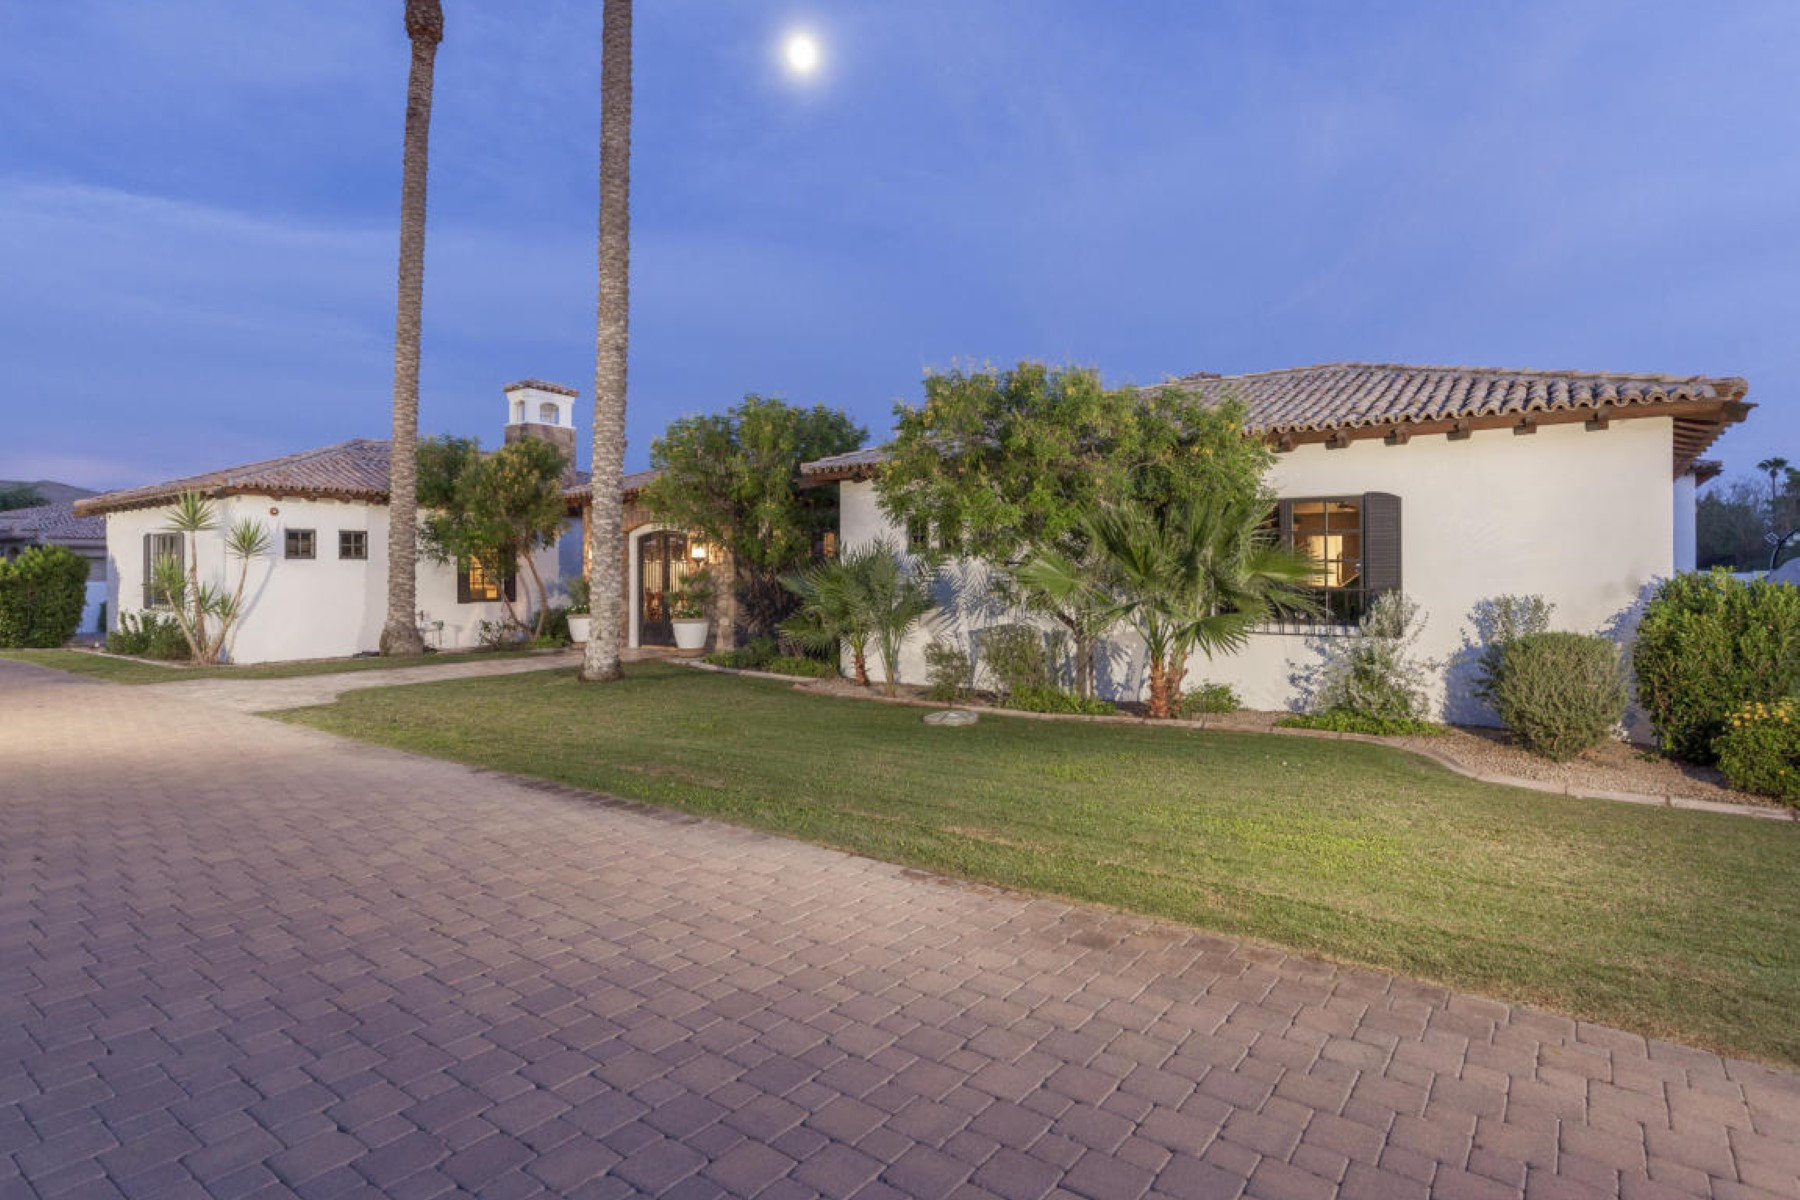 Property For Sale at One of Cactus Acres' premier estate homes.